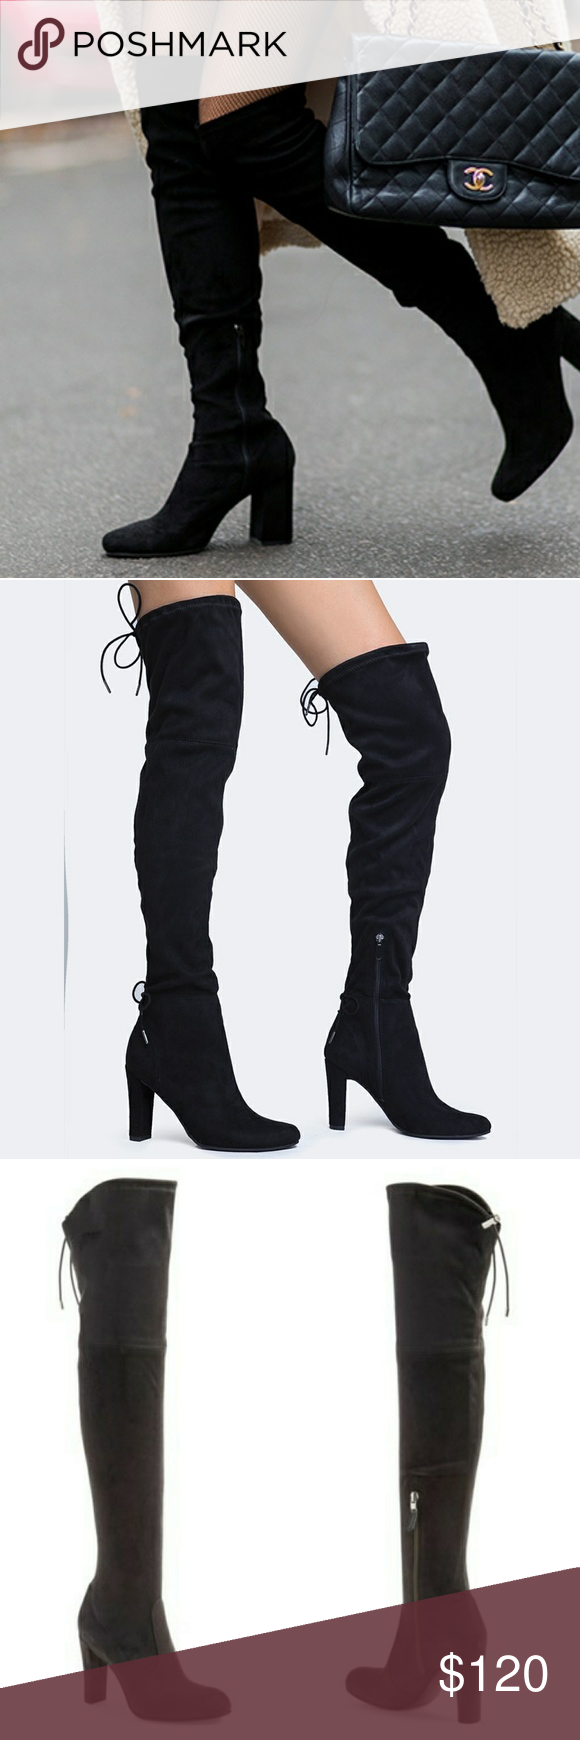 4839ca9559a Sam Edelman Kent Suede Over The Knee Boots